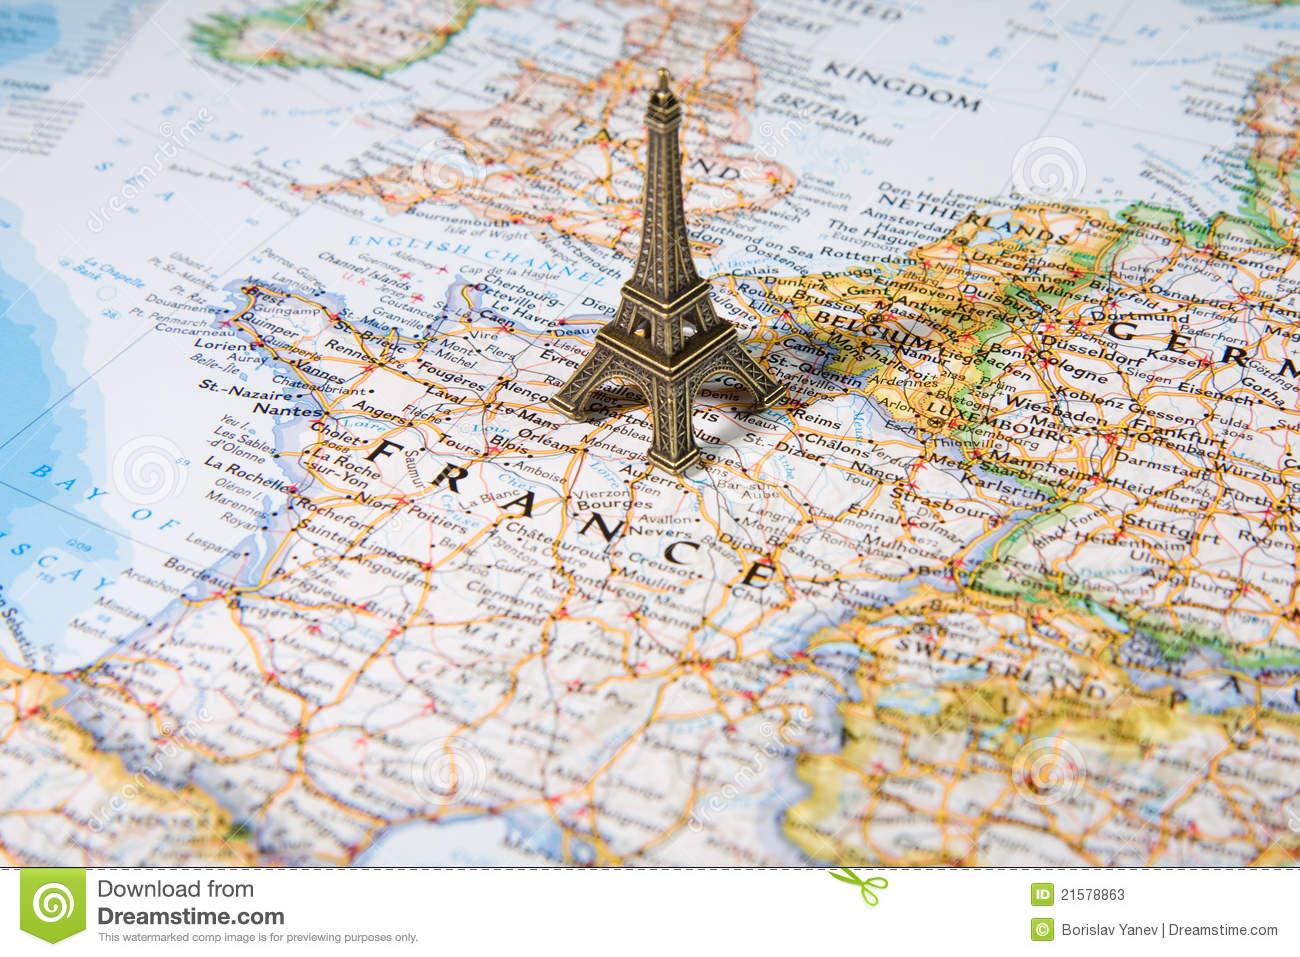 Statue Of Eiffel Tower On A Map Stock Photos - Image: 21578863